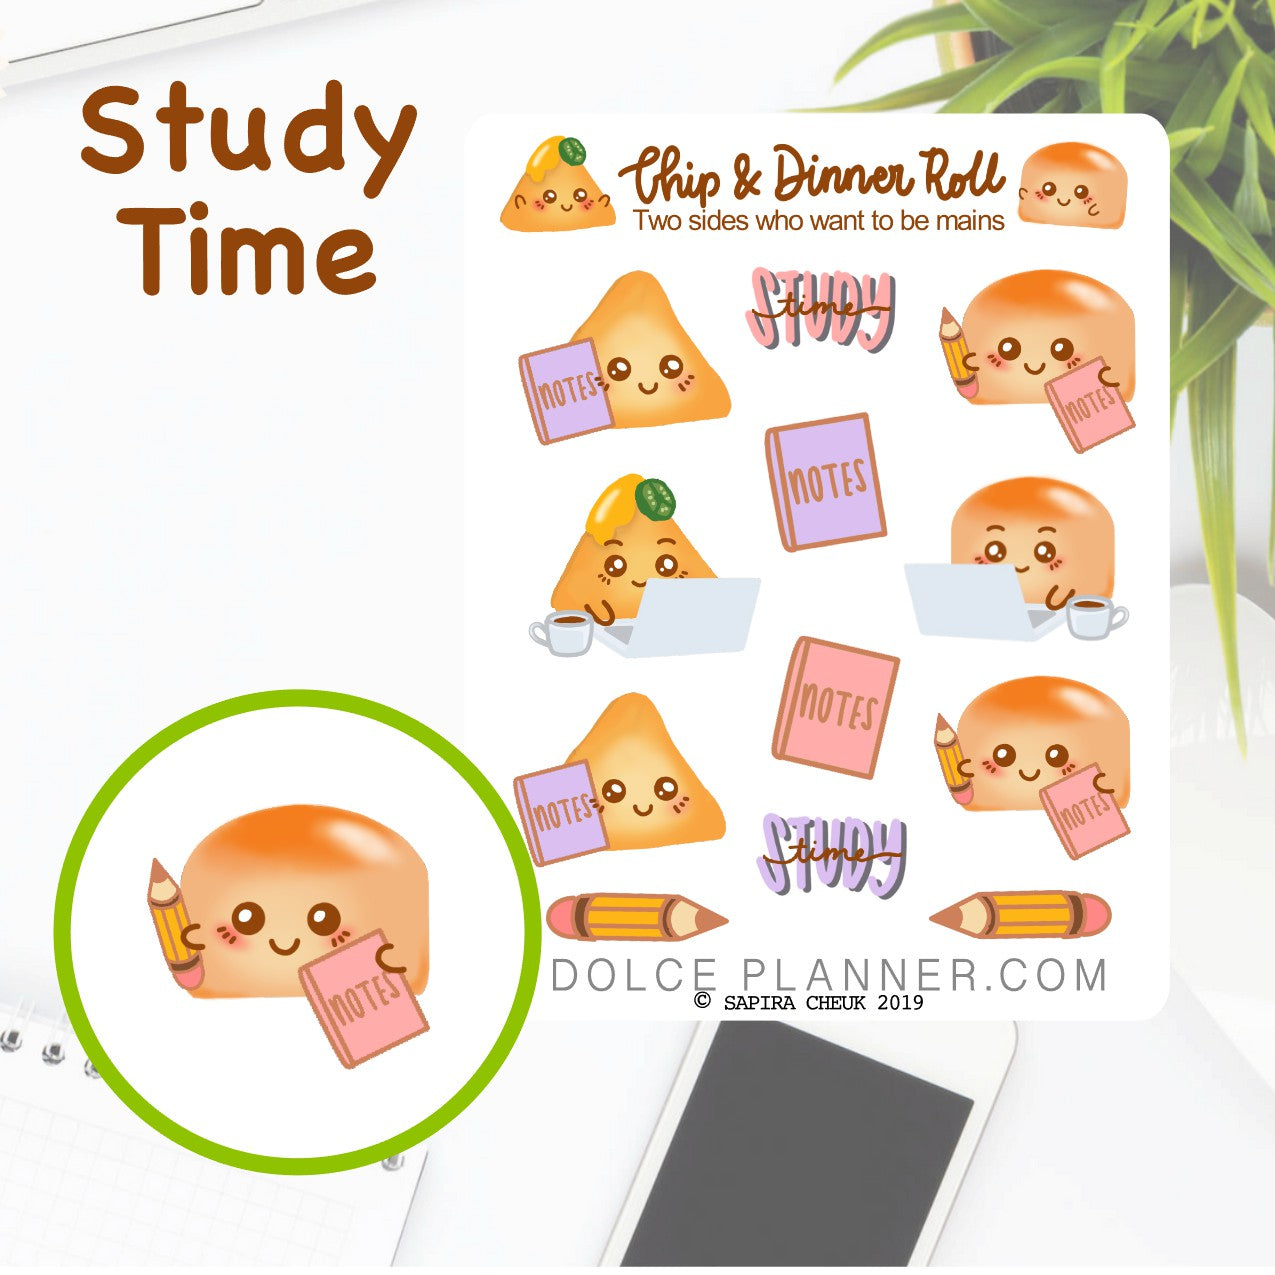 School and Study Chip & DInner Roll Character Planner Sticker